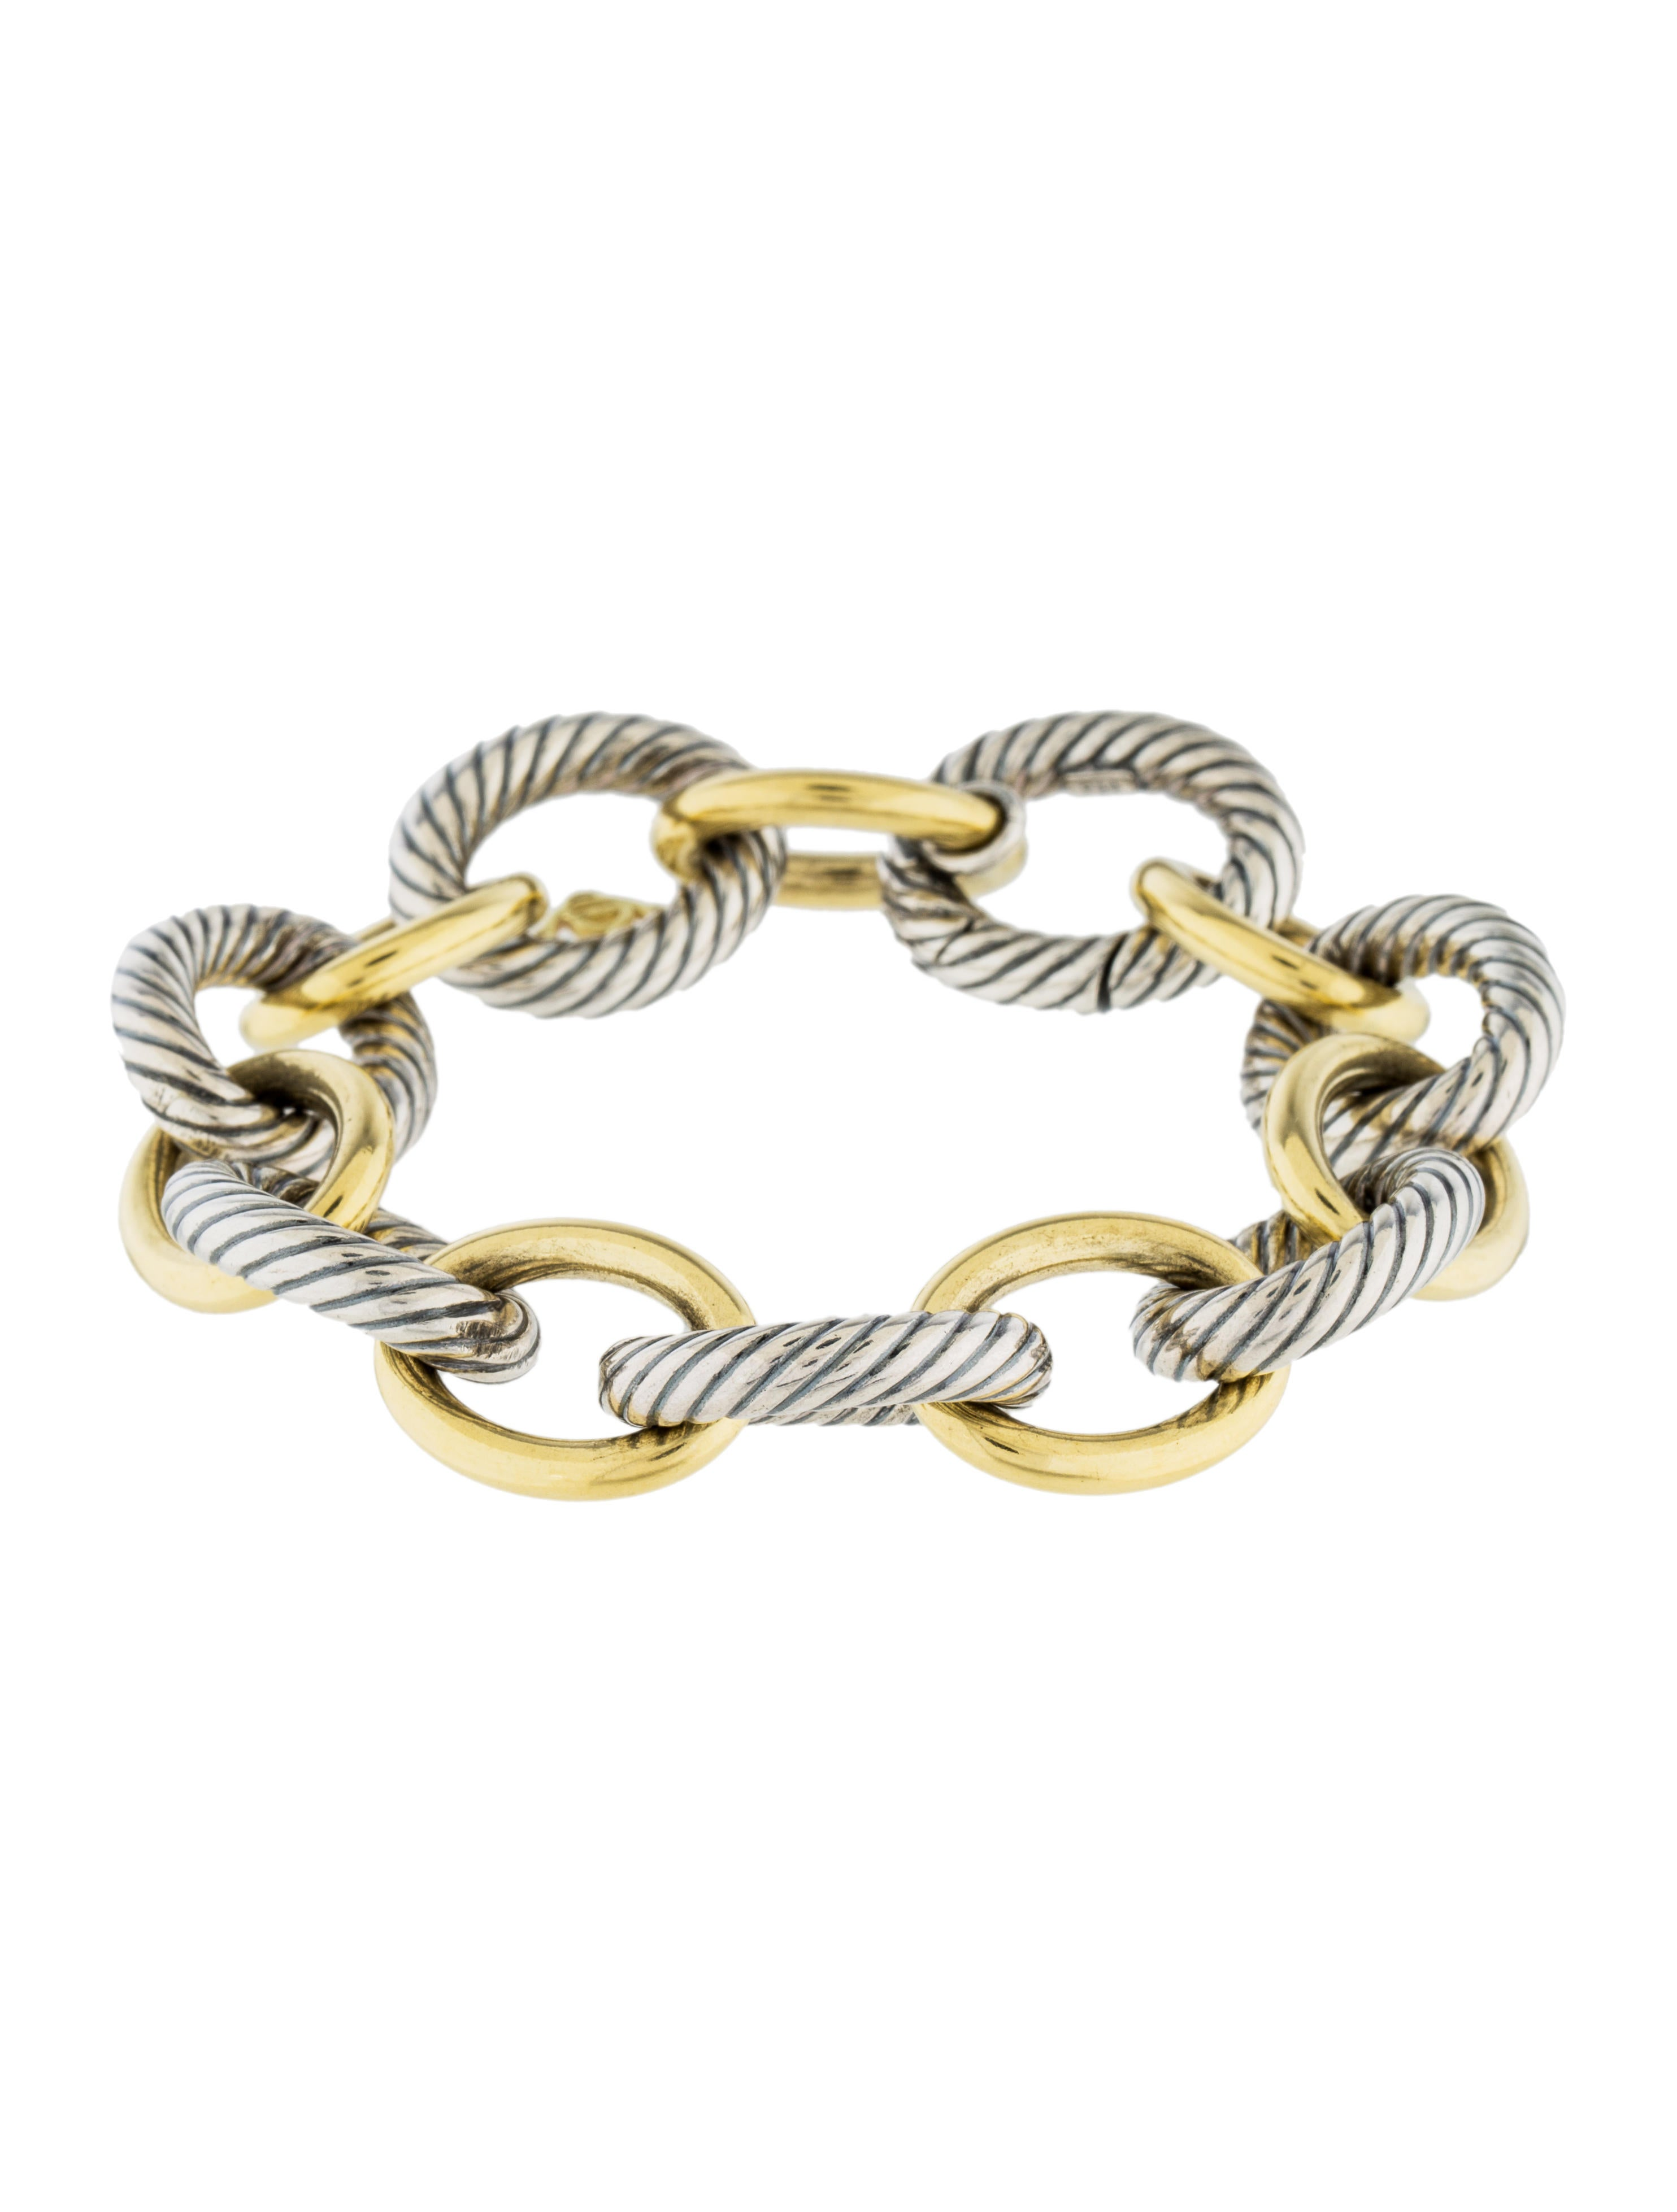 david yurman oval link bracelet david yurman large oval link bracelet bracelets 5620